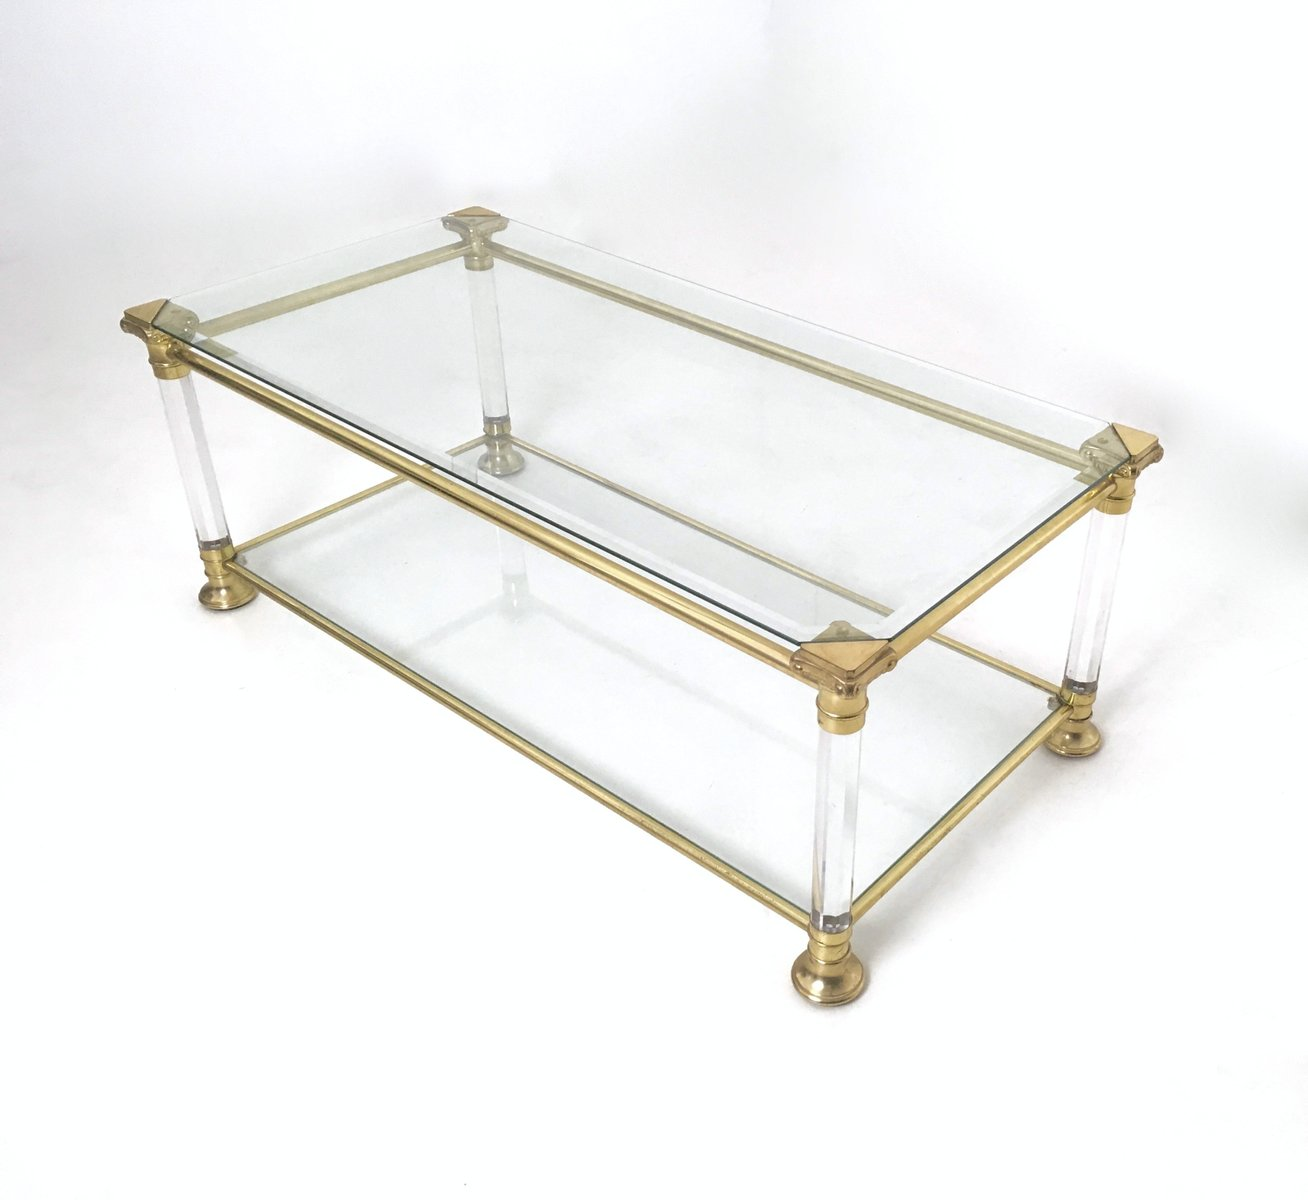 Vintage Italian Crystal Plexiglass And Brass Coffee Table 1980s For Sale At Pamono